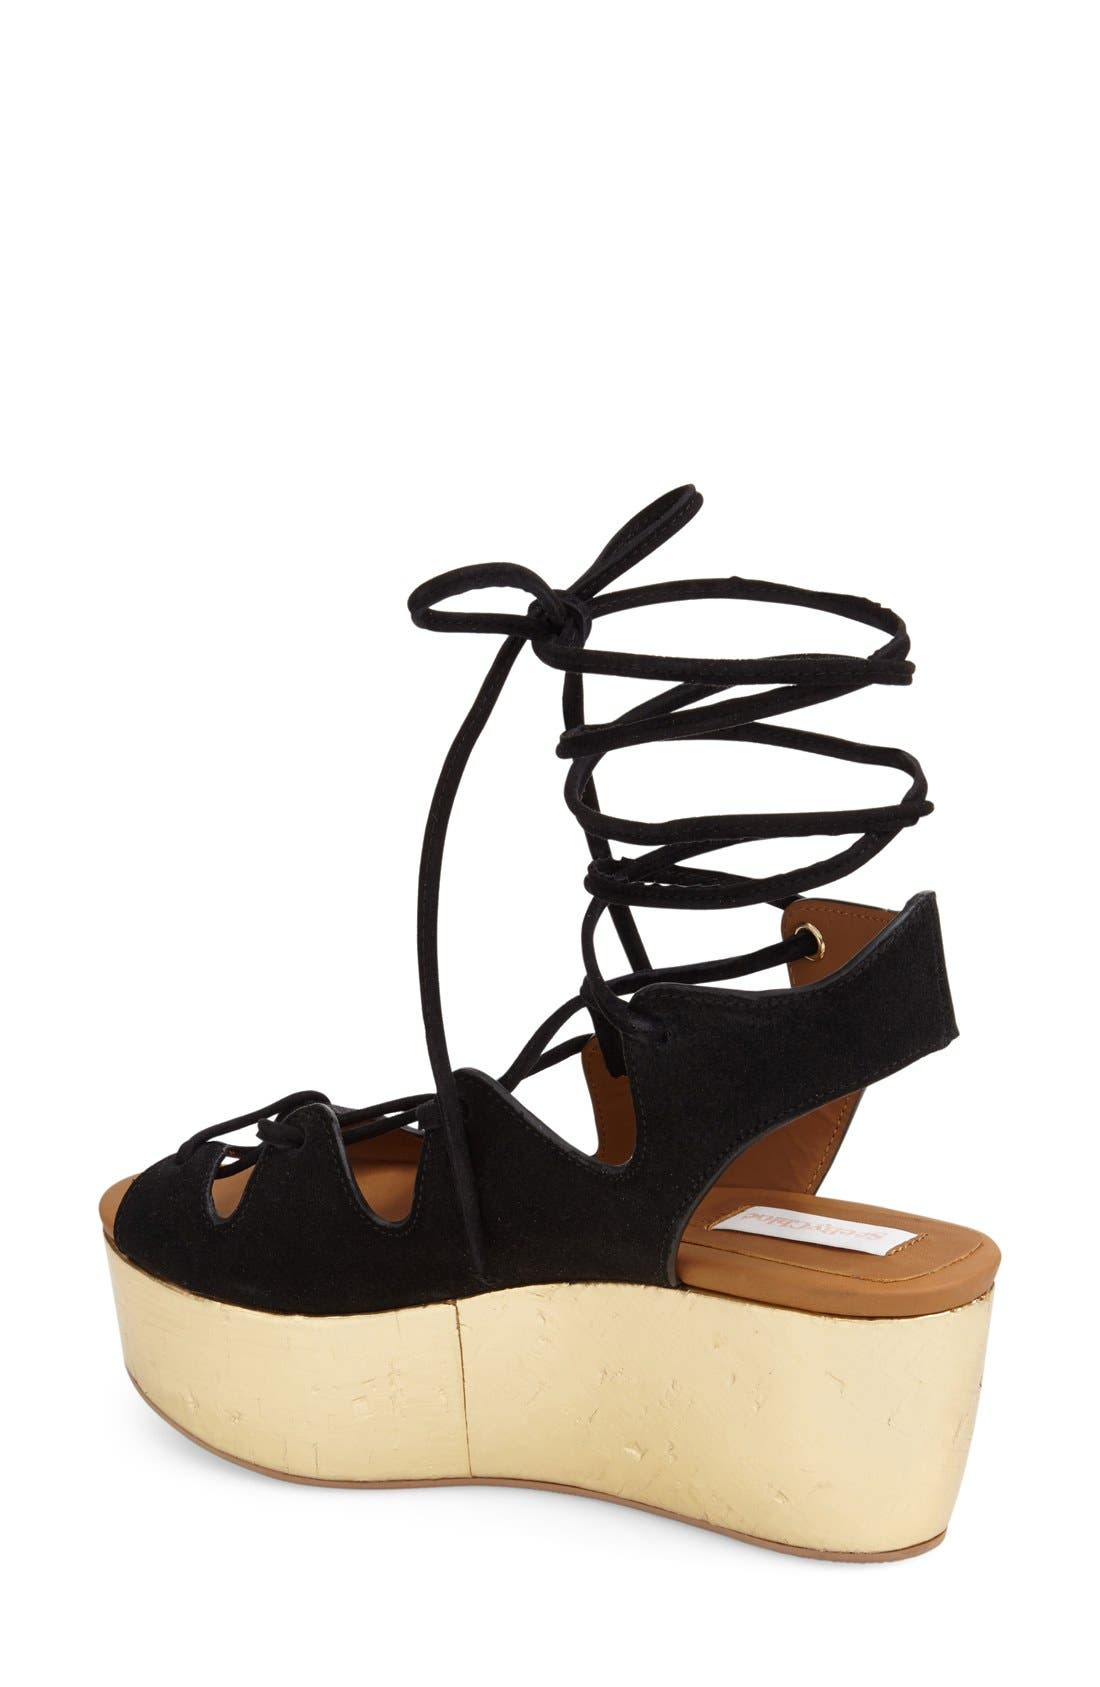 'Liana' Platform Wedge Sandal,                             Alternate thumbnail 4, color,                             001